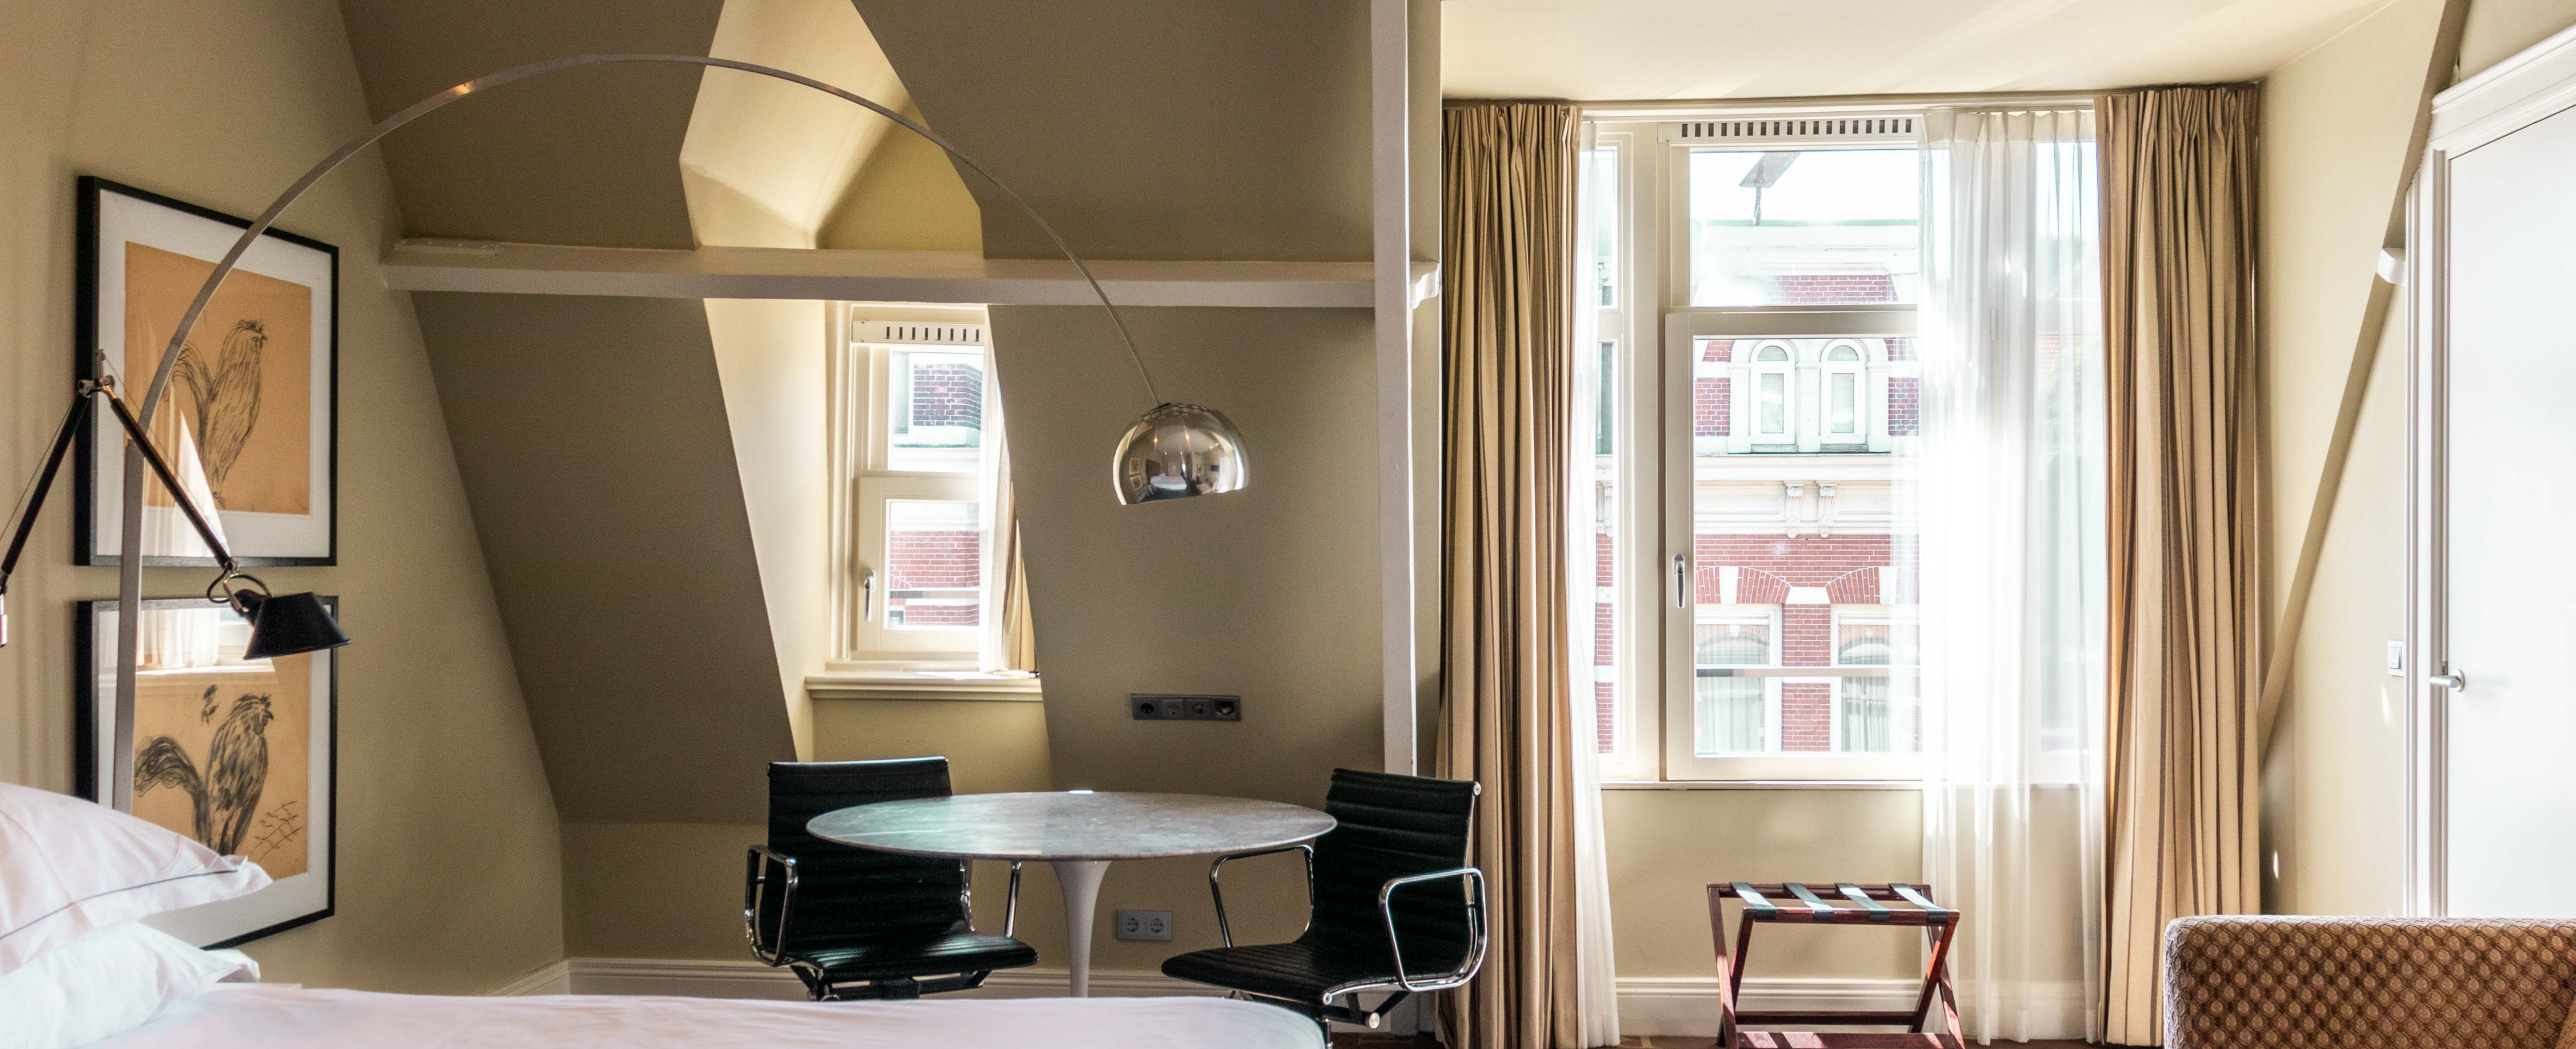 VH-LM-Hotel Roemer-LR-SUITE (7)